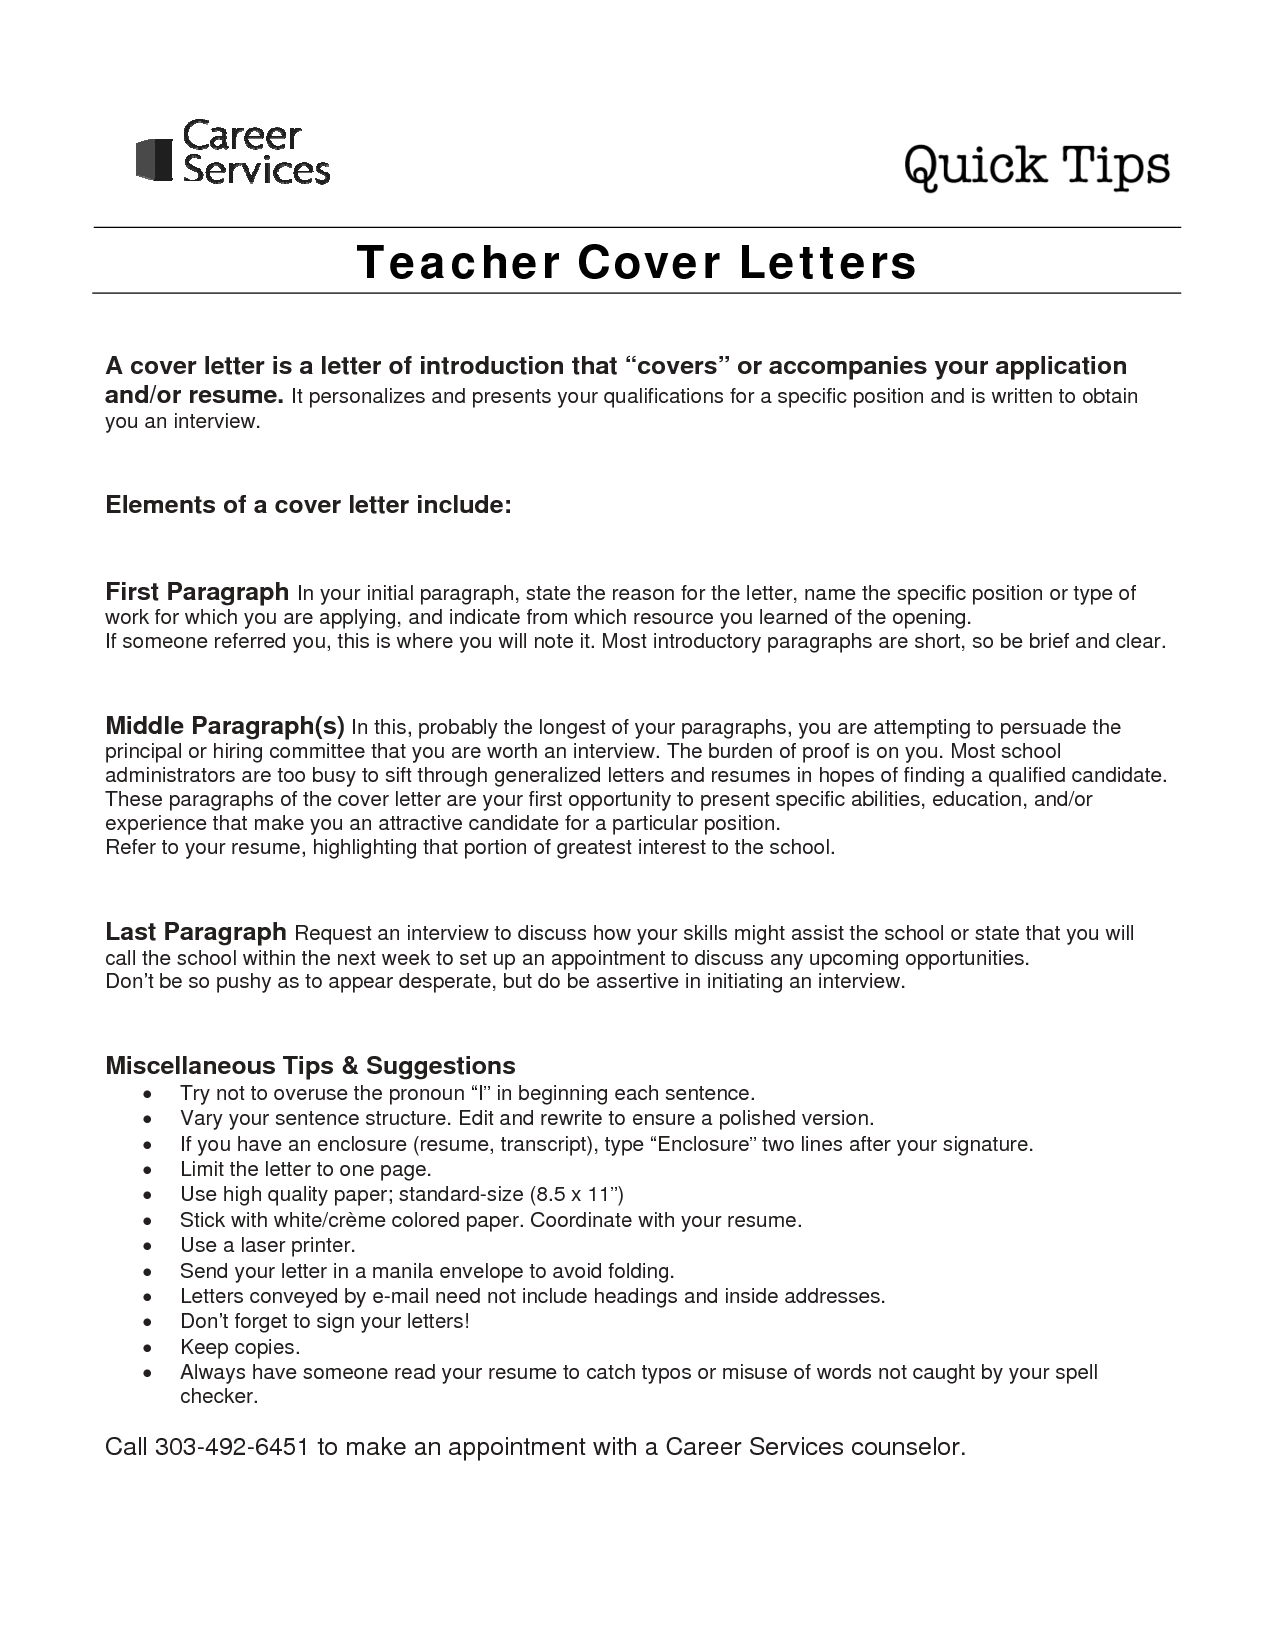 cover letter So you leaves impression